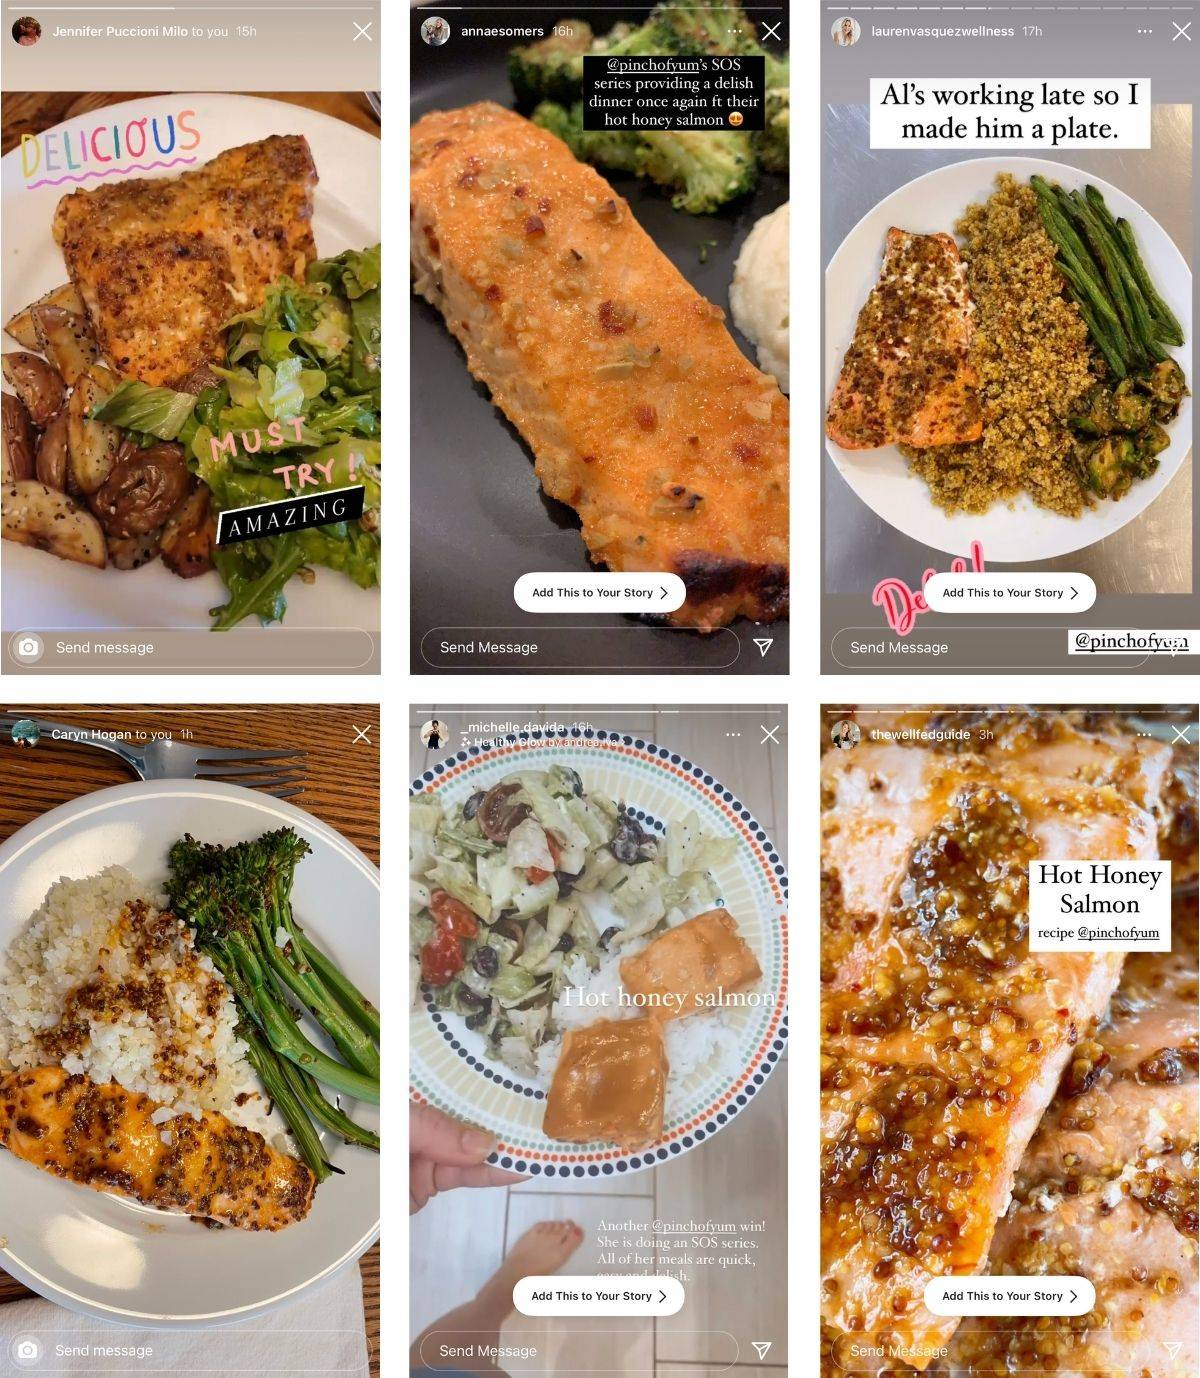 Reader images of the Hot Honey Salmon recipe.